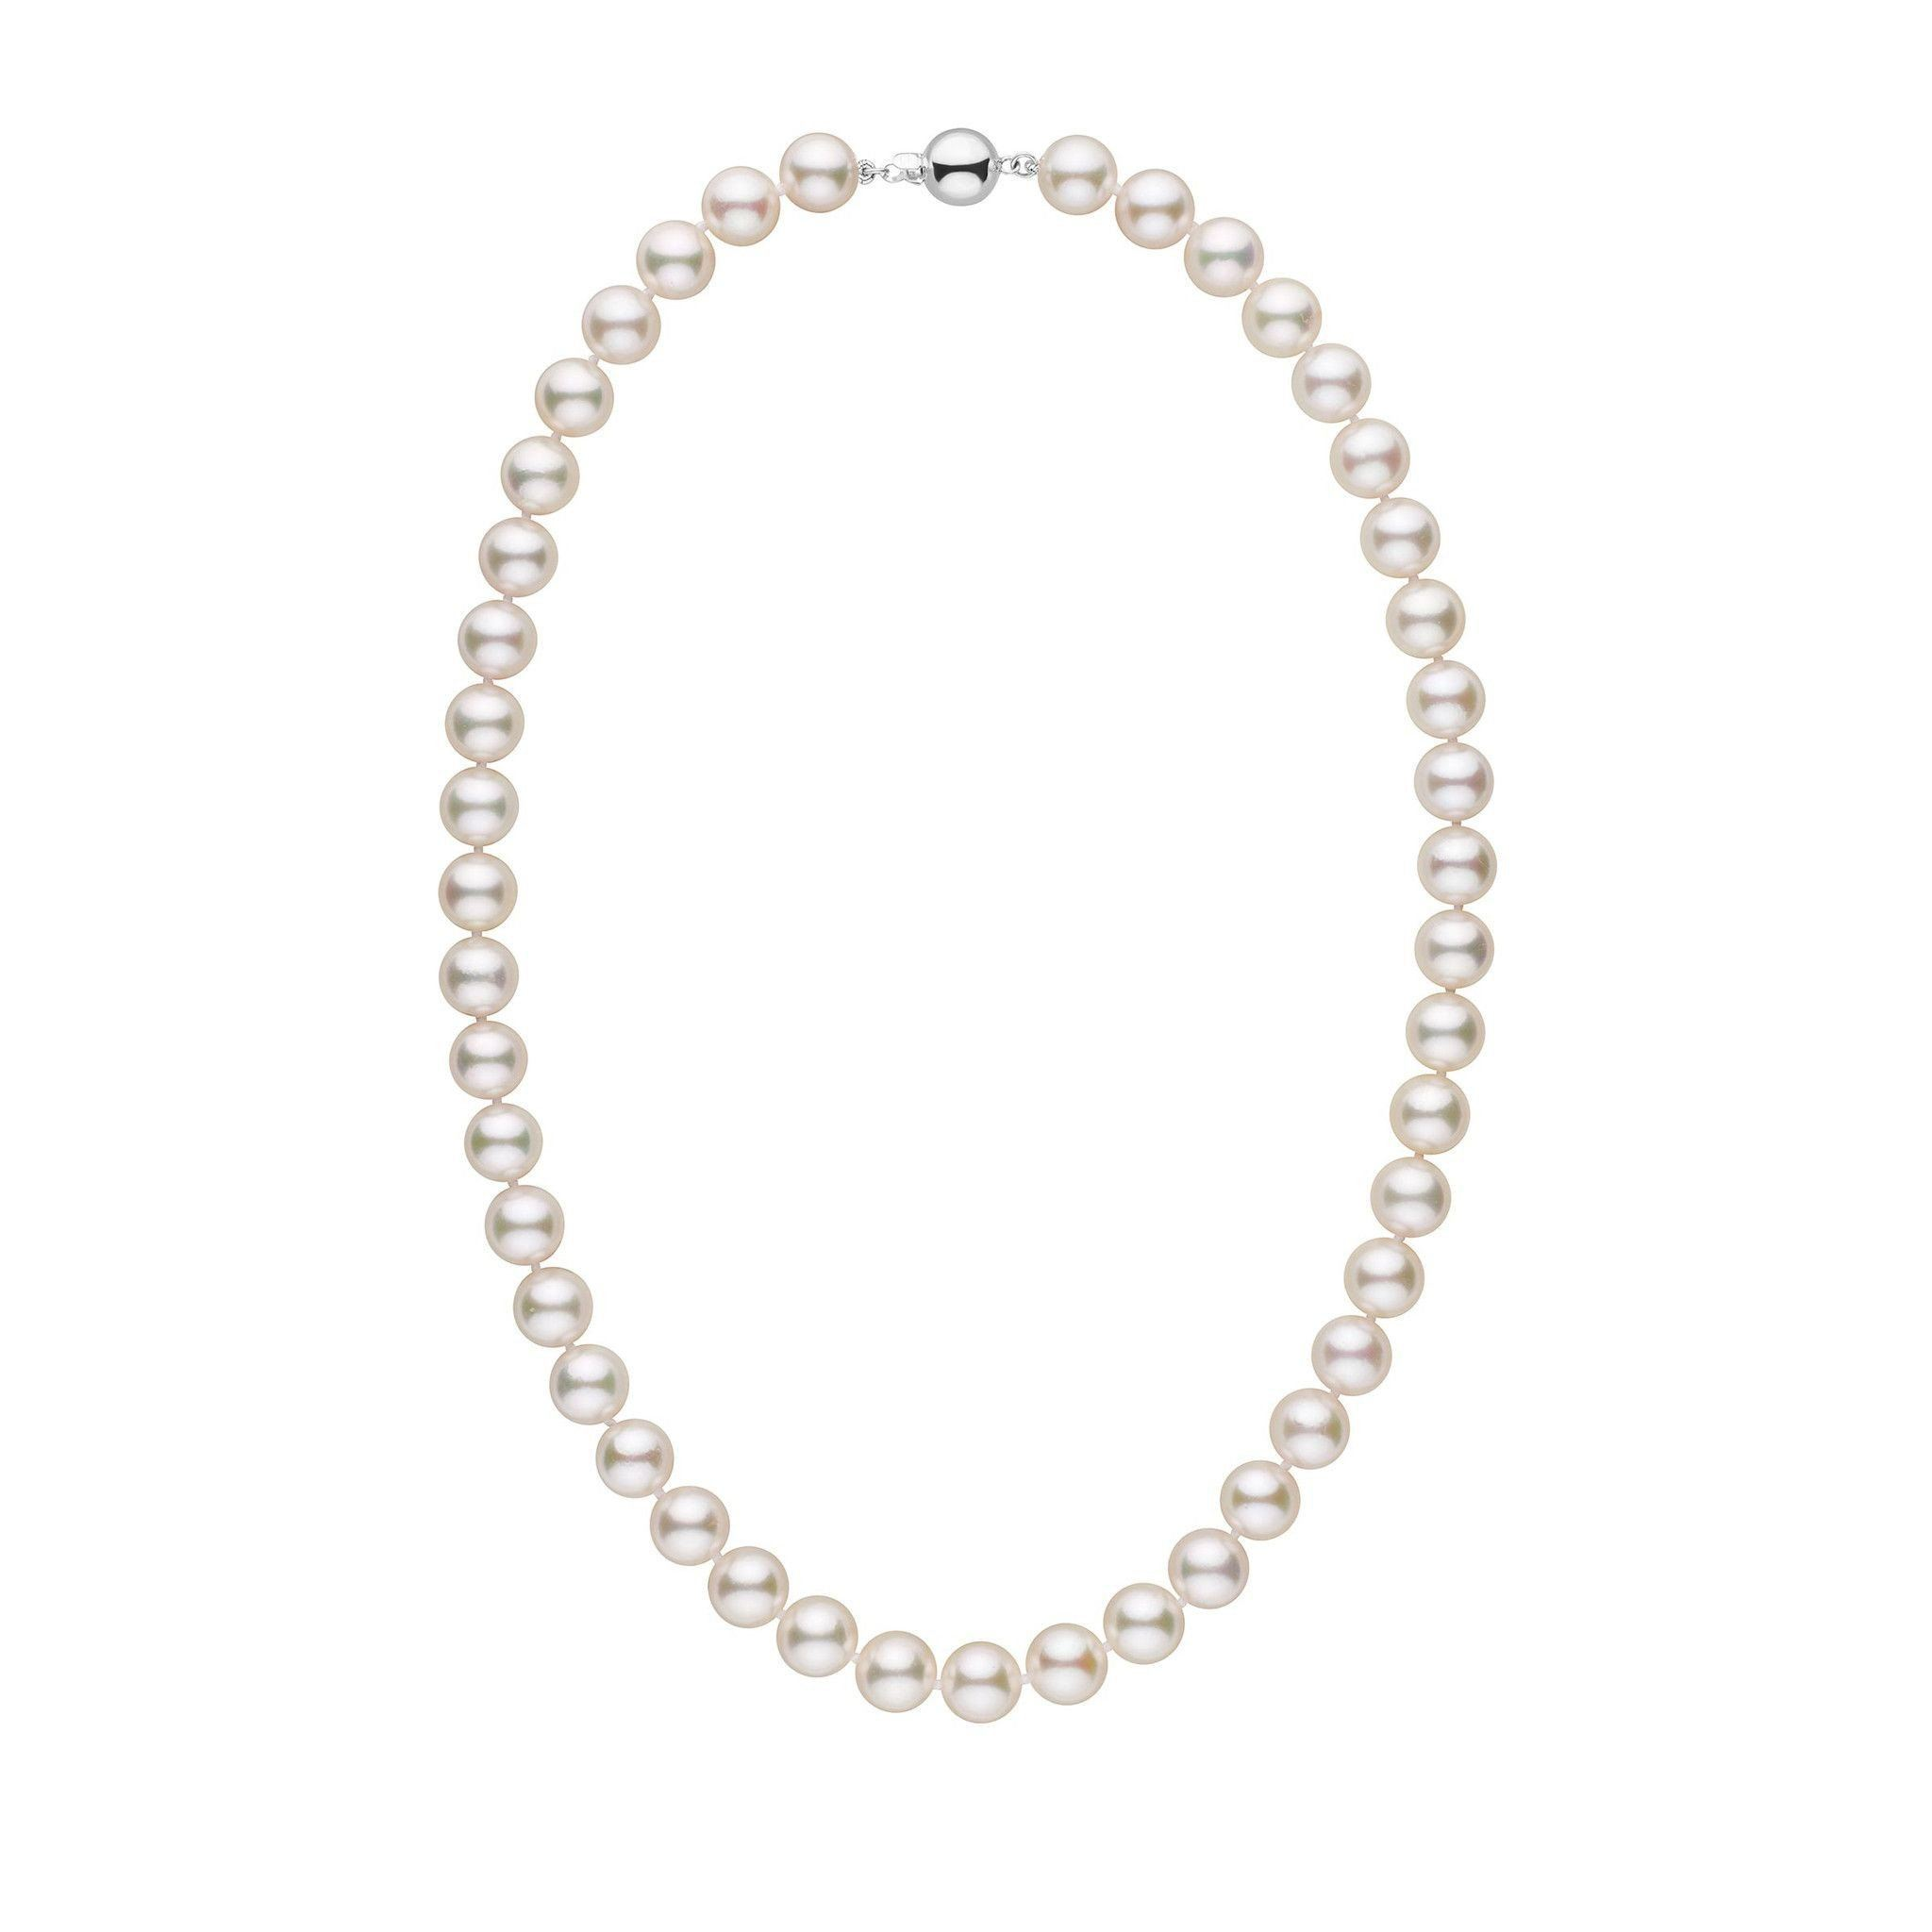 9.0-9.5 mm 18 Inch AA+ White Akoya Pearl Necklace